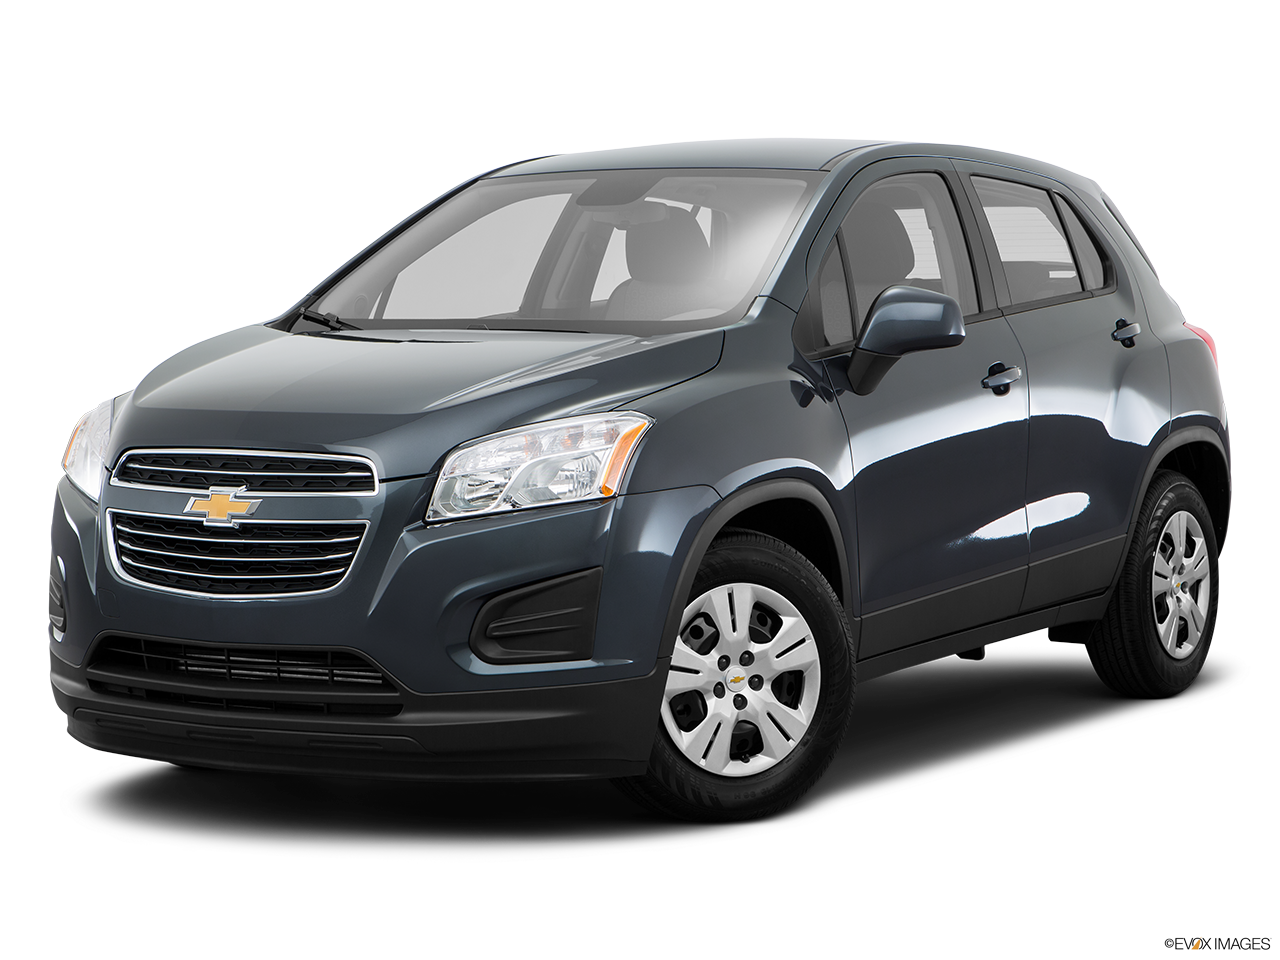 2017 chevy trax cincinnati oh mccluskey chevrolet. Black Bedroom Furniture Sets. Home Design Ideas